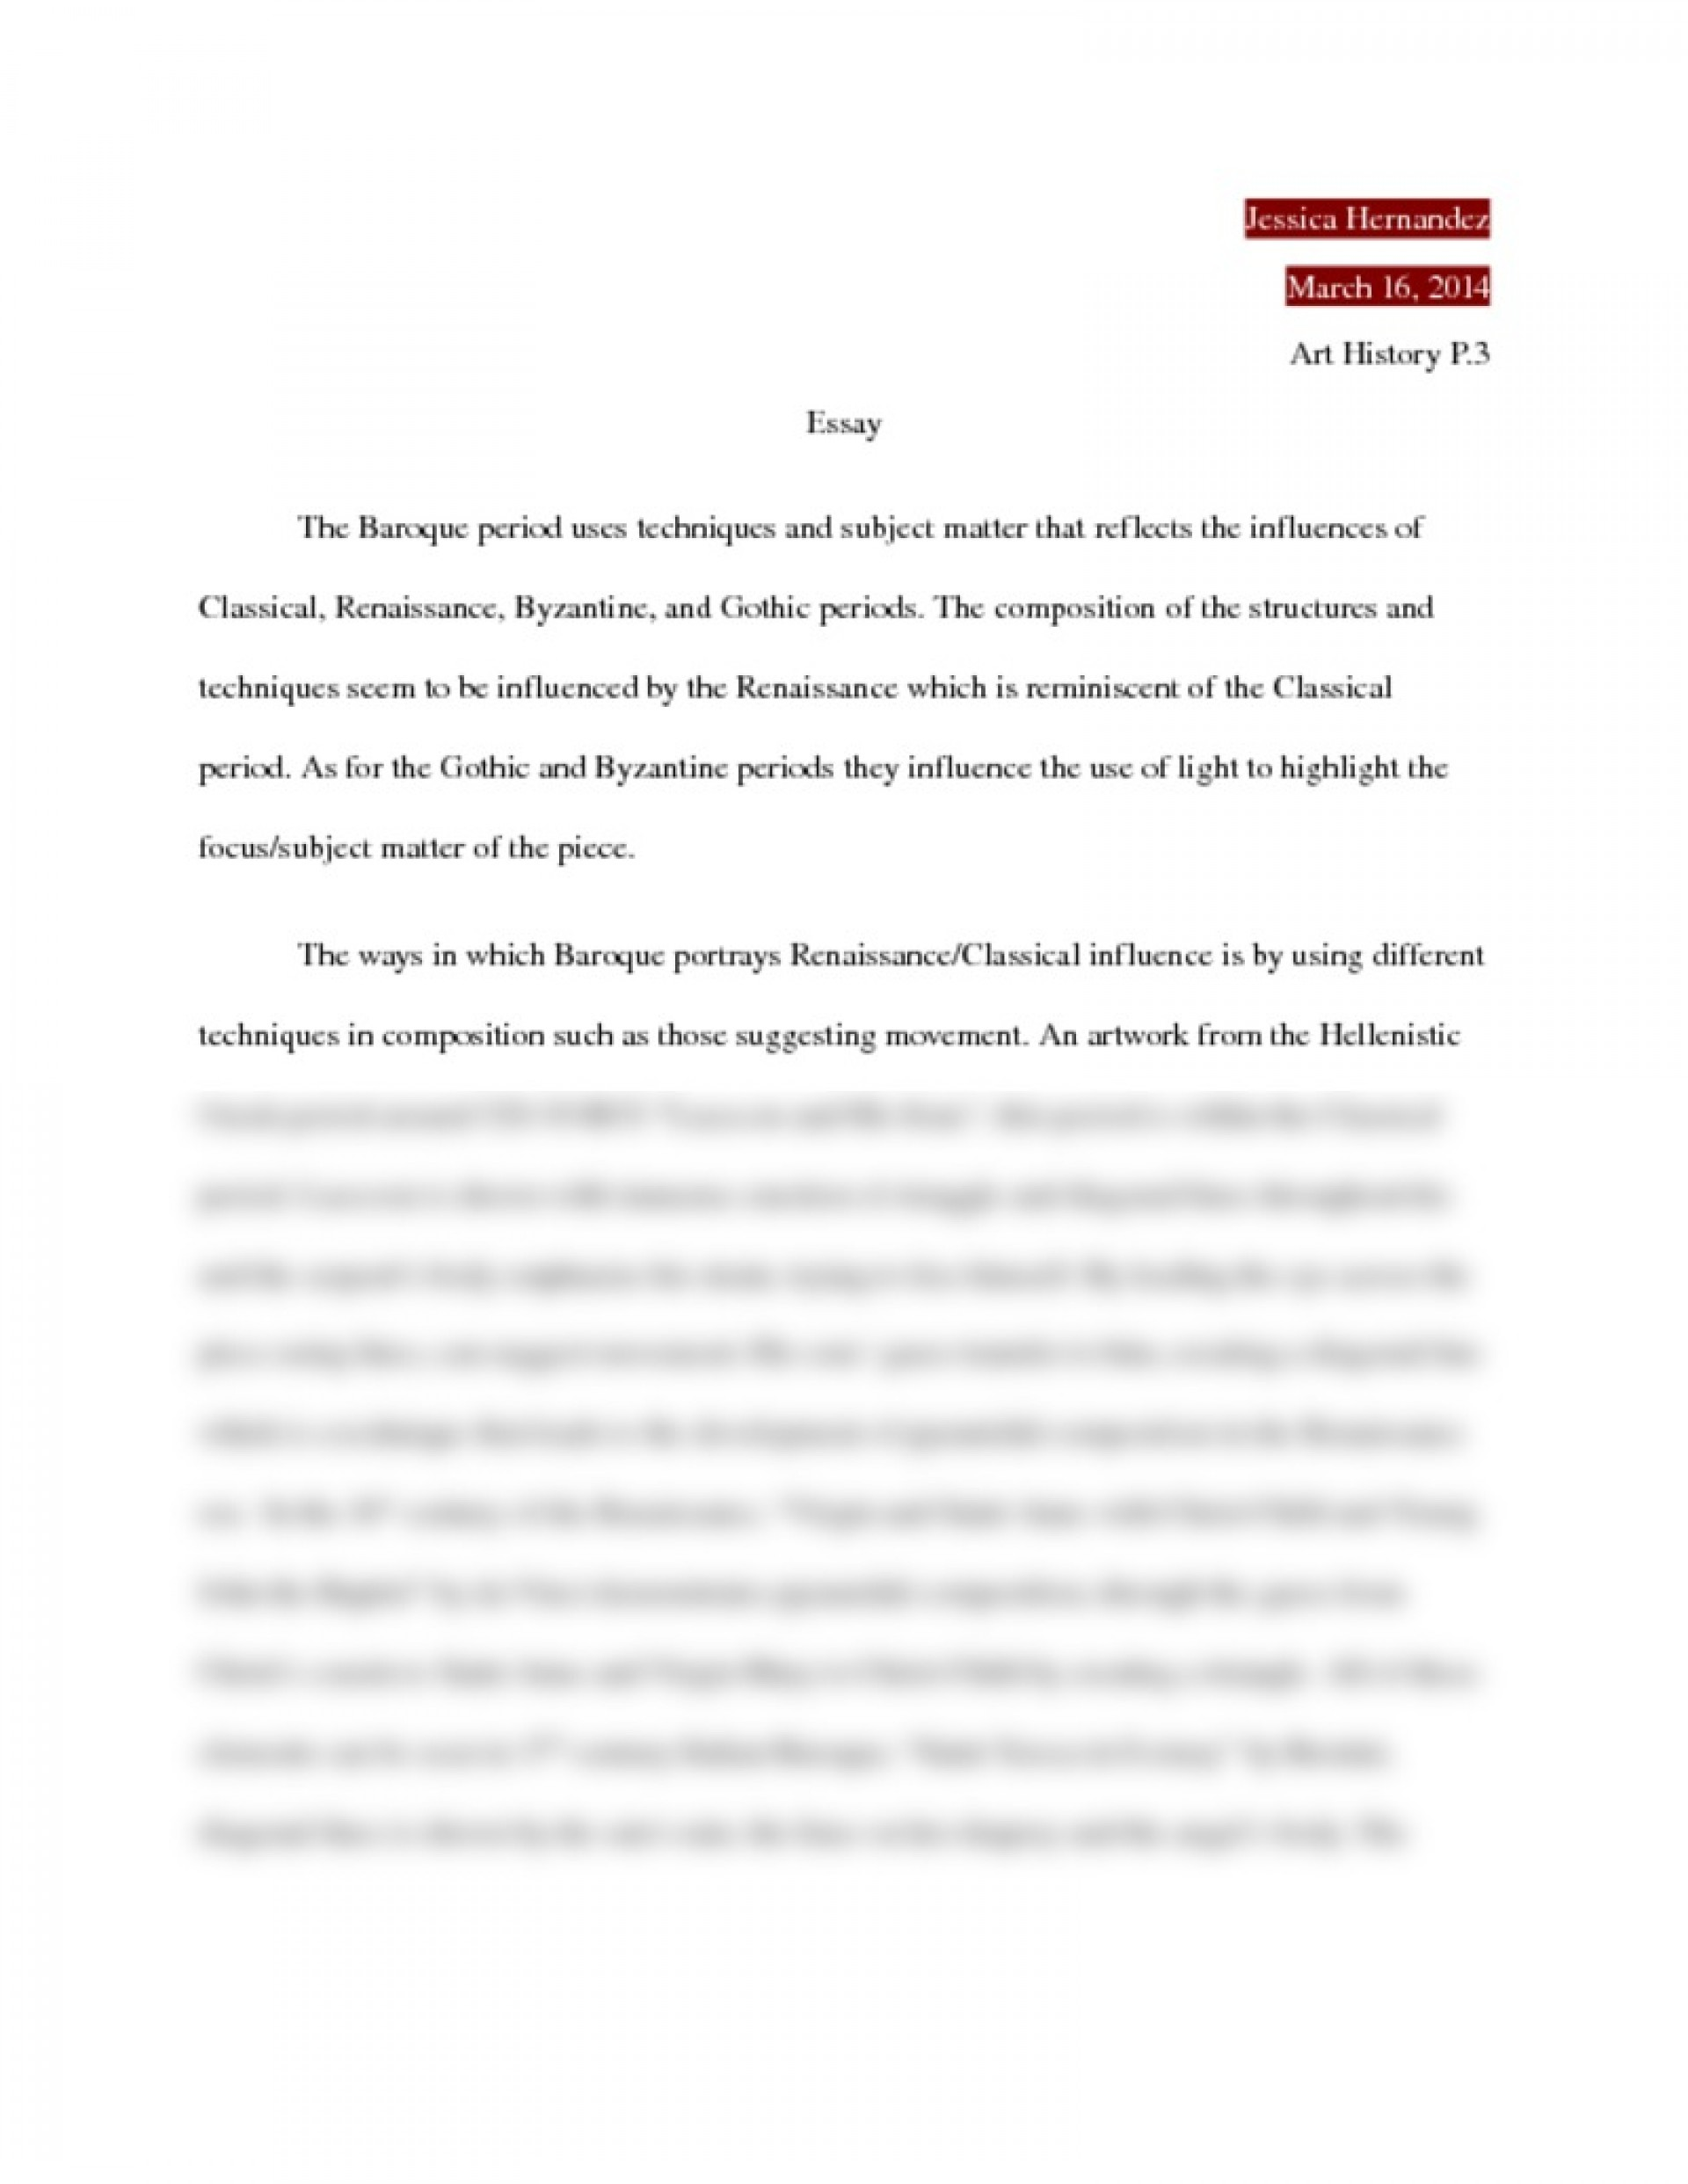 essay example art history introduction to personal topics high    art history essay example marvelous ap writing tips questions   titles